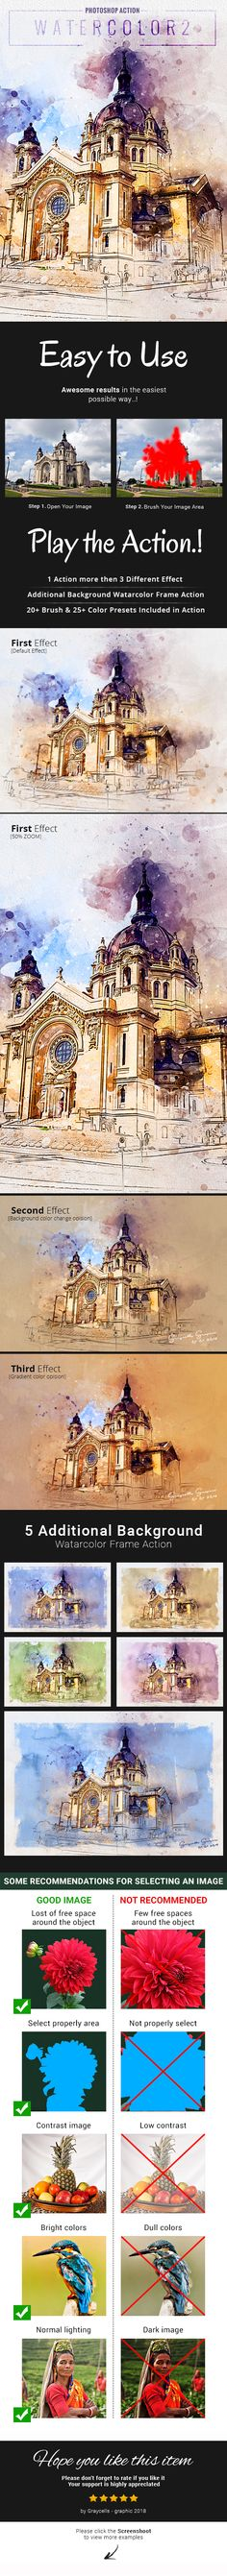 Watercolor 2 Artist Photoshop Action - Photo Effects Actions